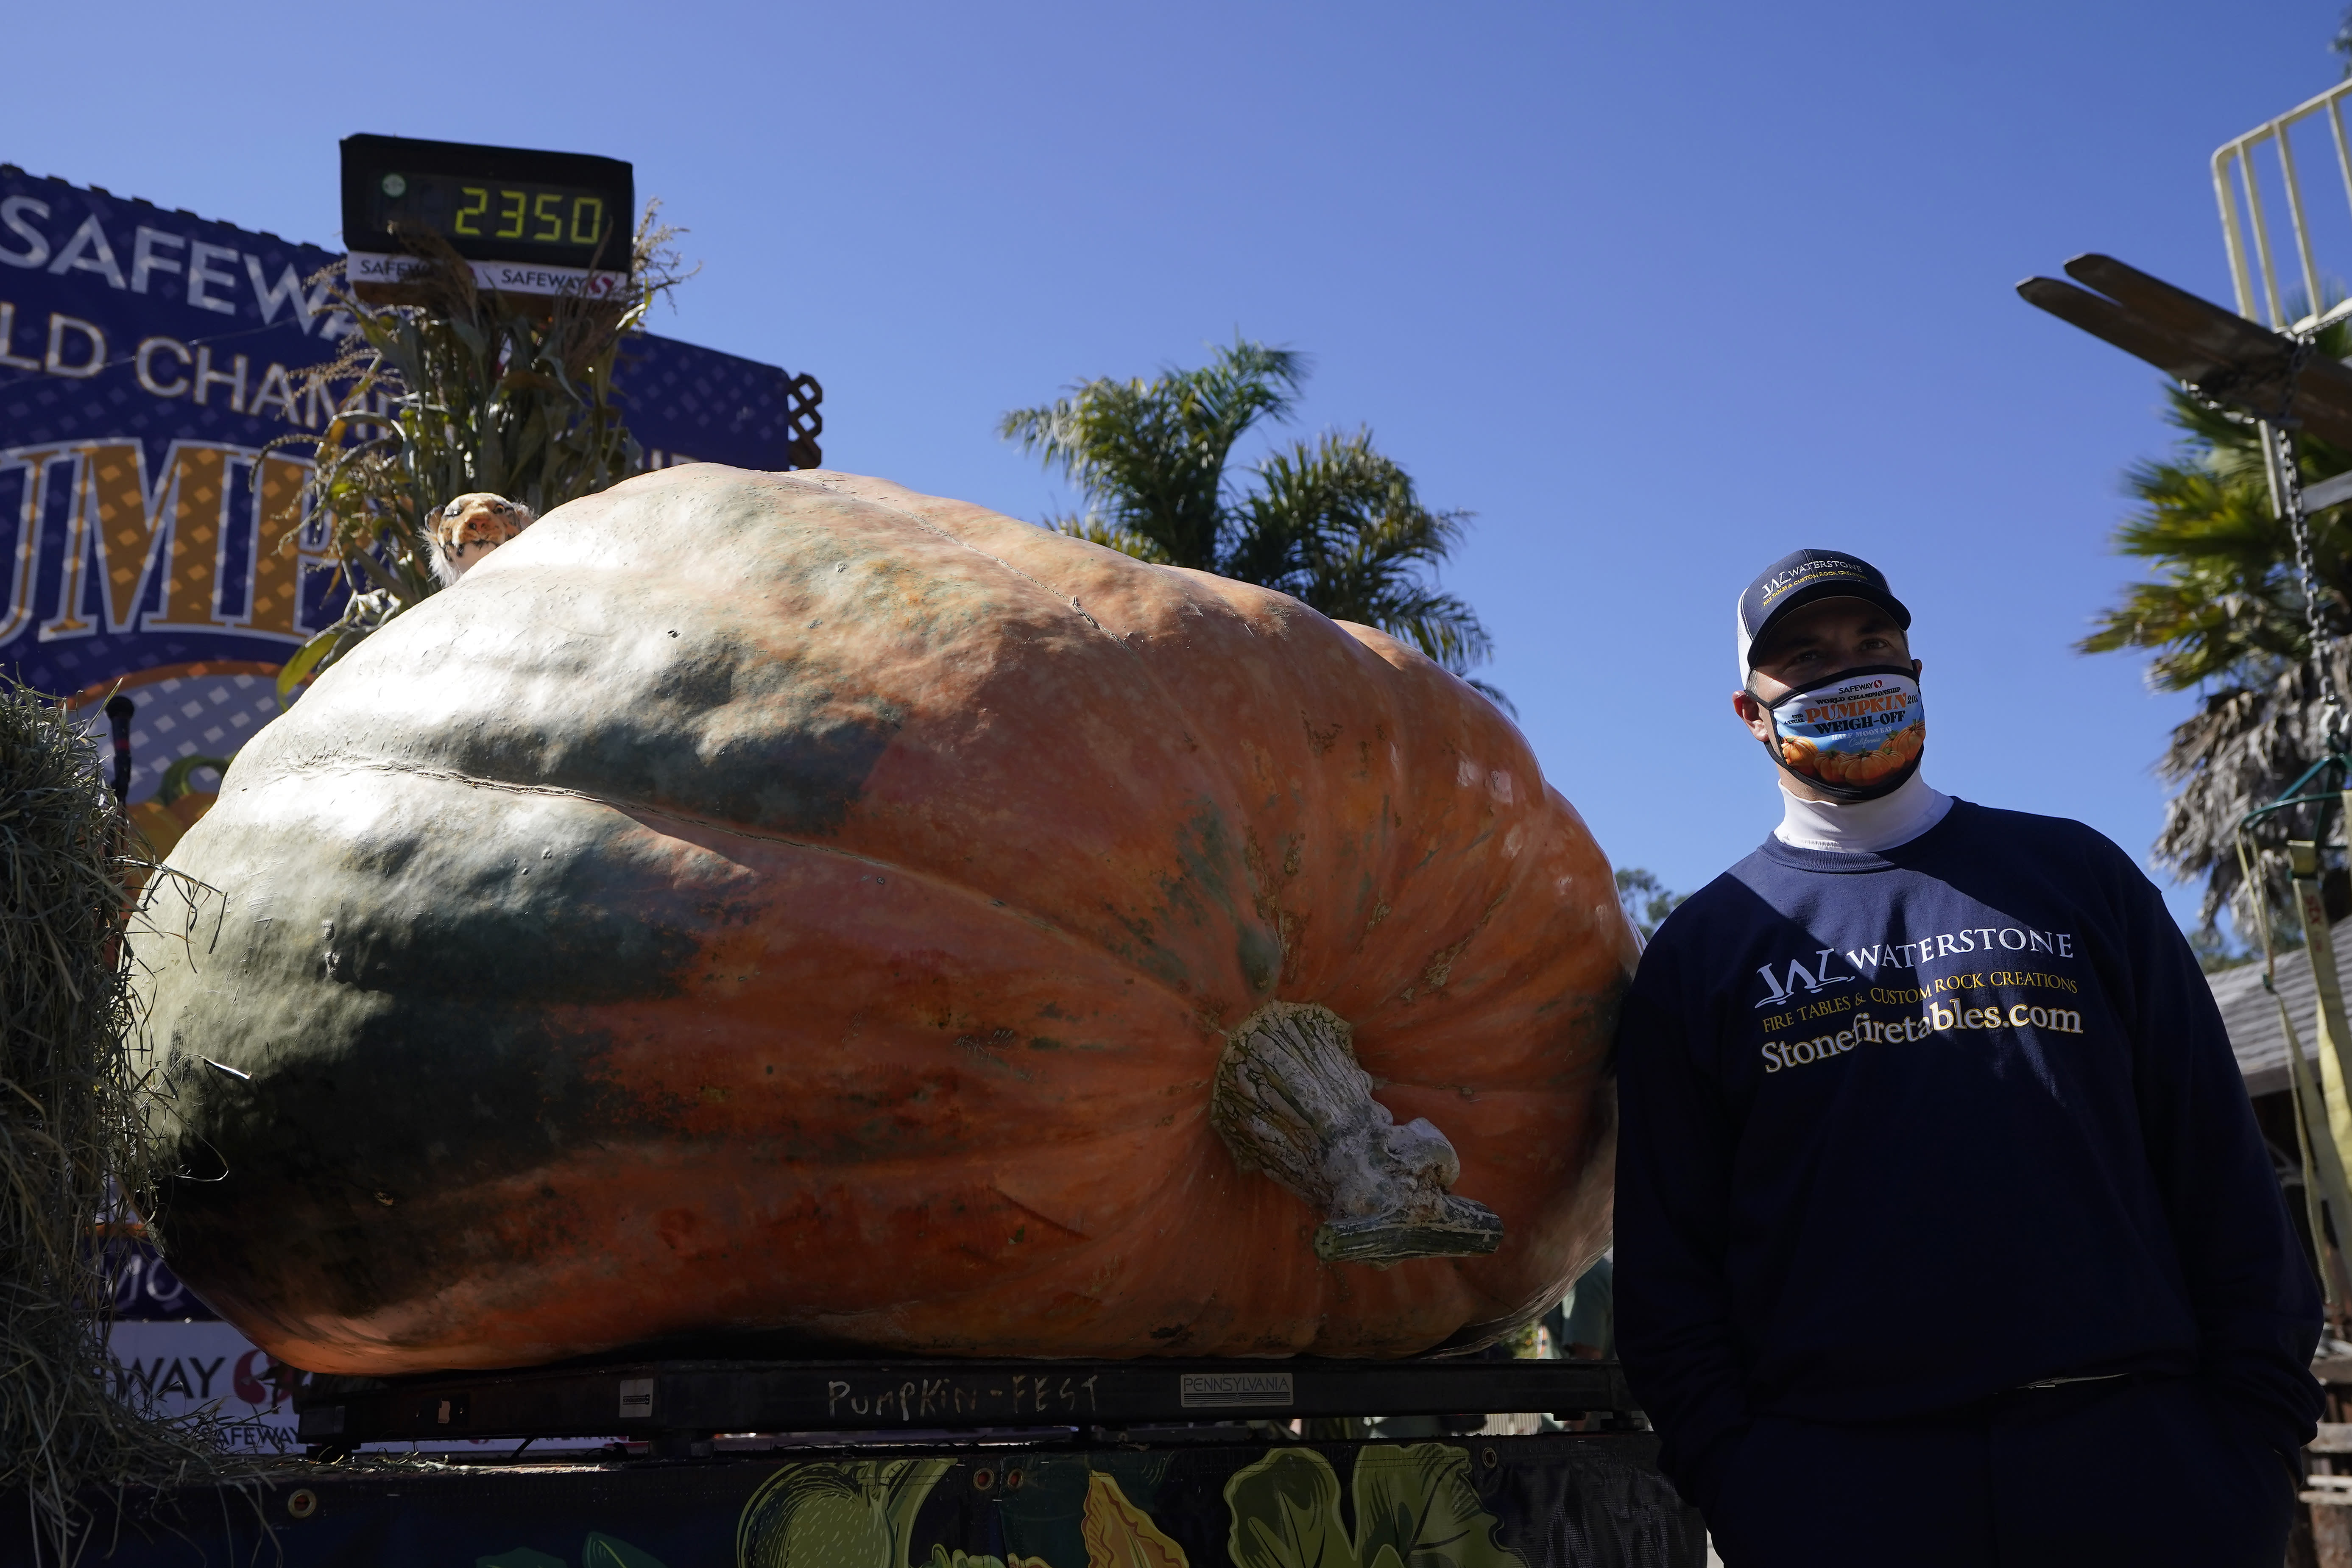 Travis Gienger, from Anoka, Minn., poses next to his pumpkin, which weighed in at 2350 pounds, to win the Safeway World Championship Pumpkin Weigh-Off in Half Moon Bay, Calif., Monday, Oct. 12, 2020. (AP Photo/Jeff Chiu)